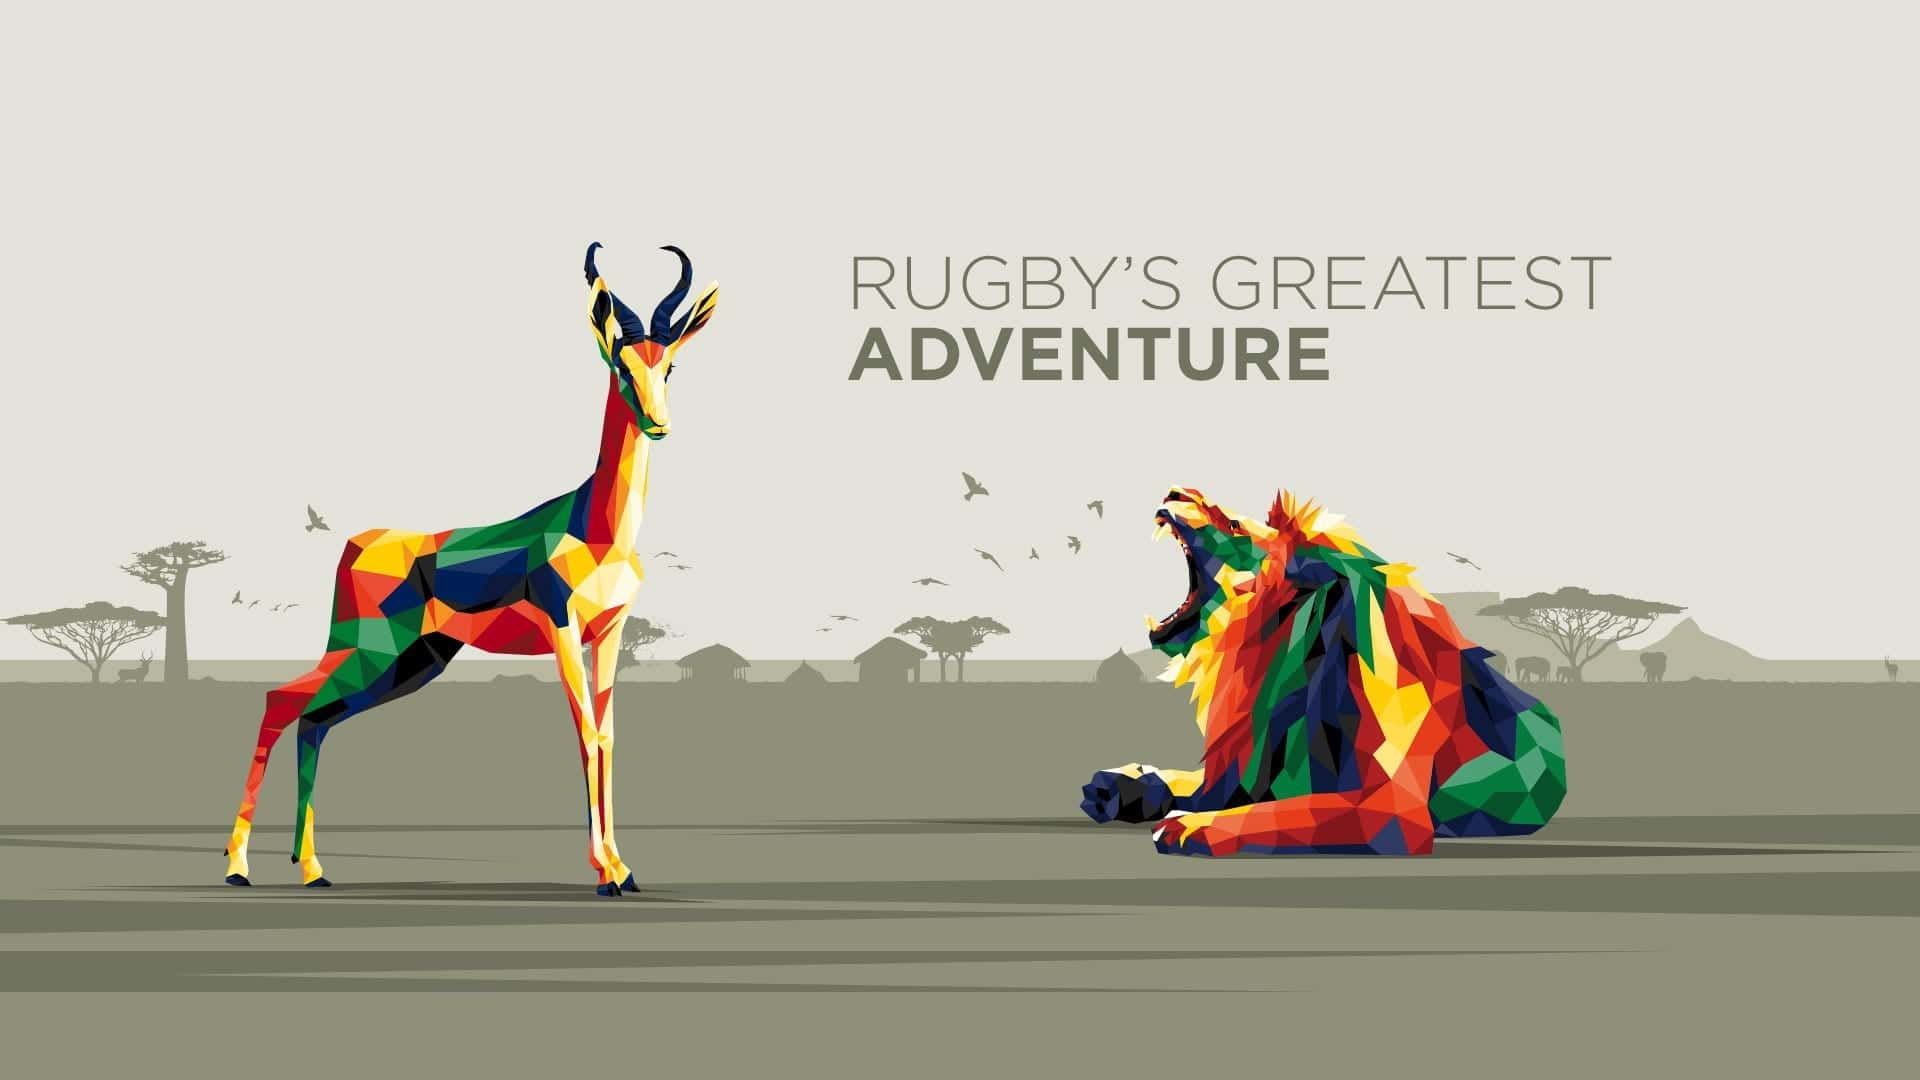 Rugby's Greatest Adventure